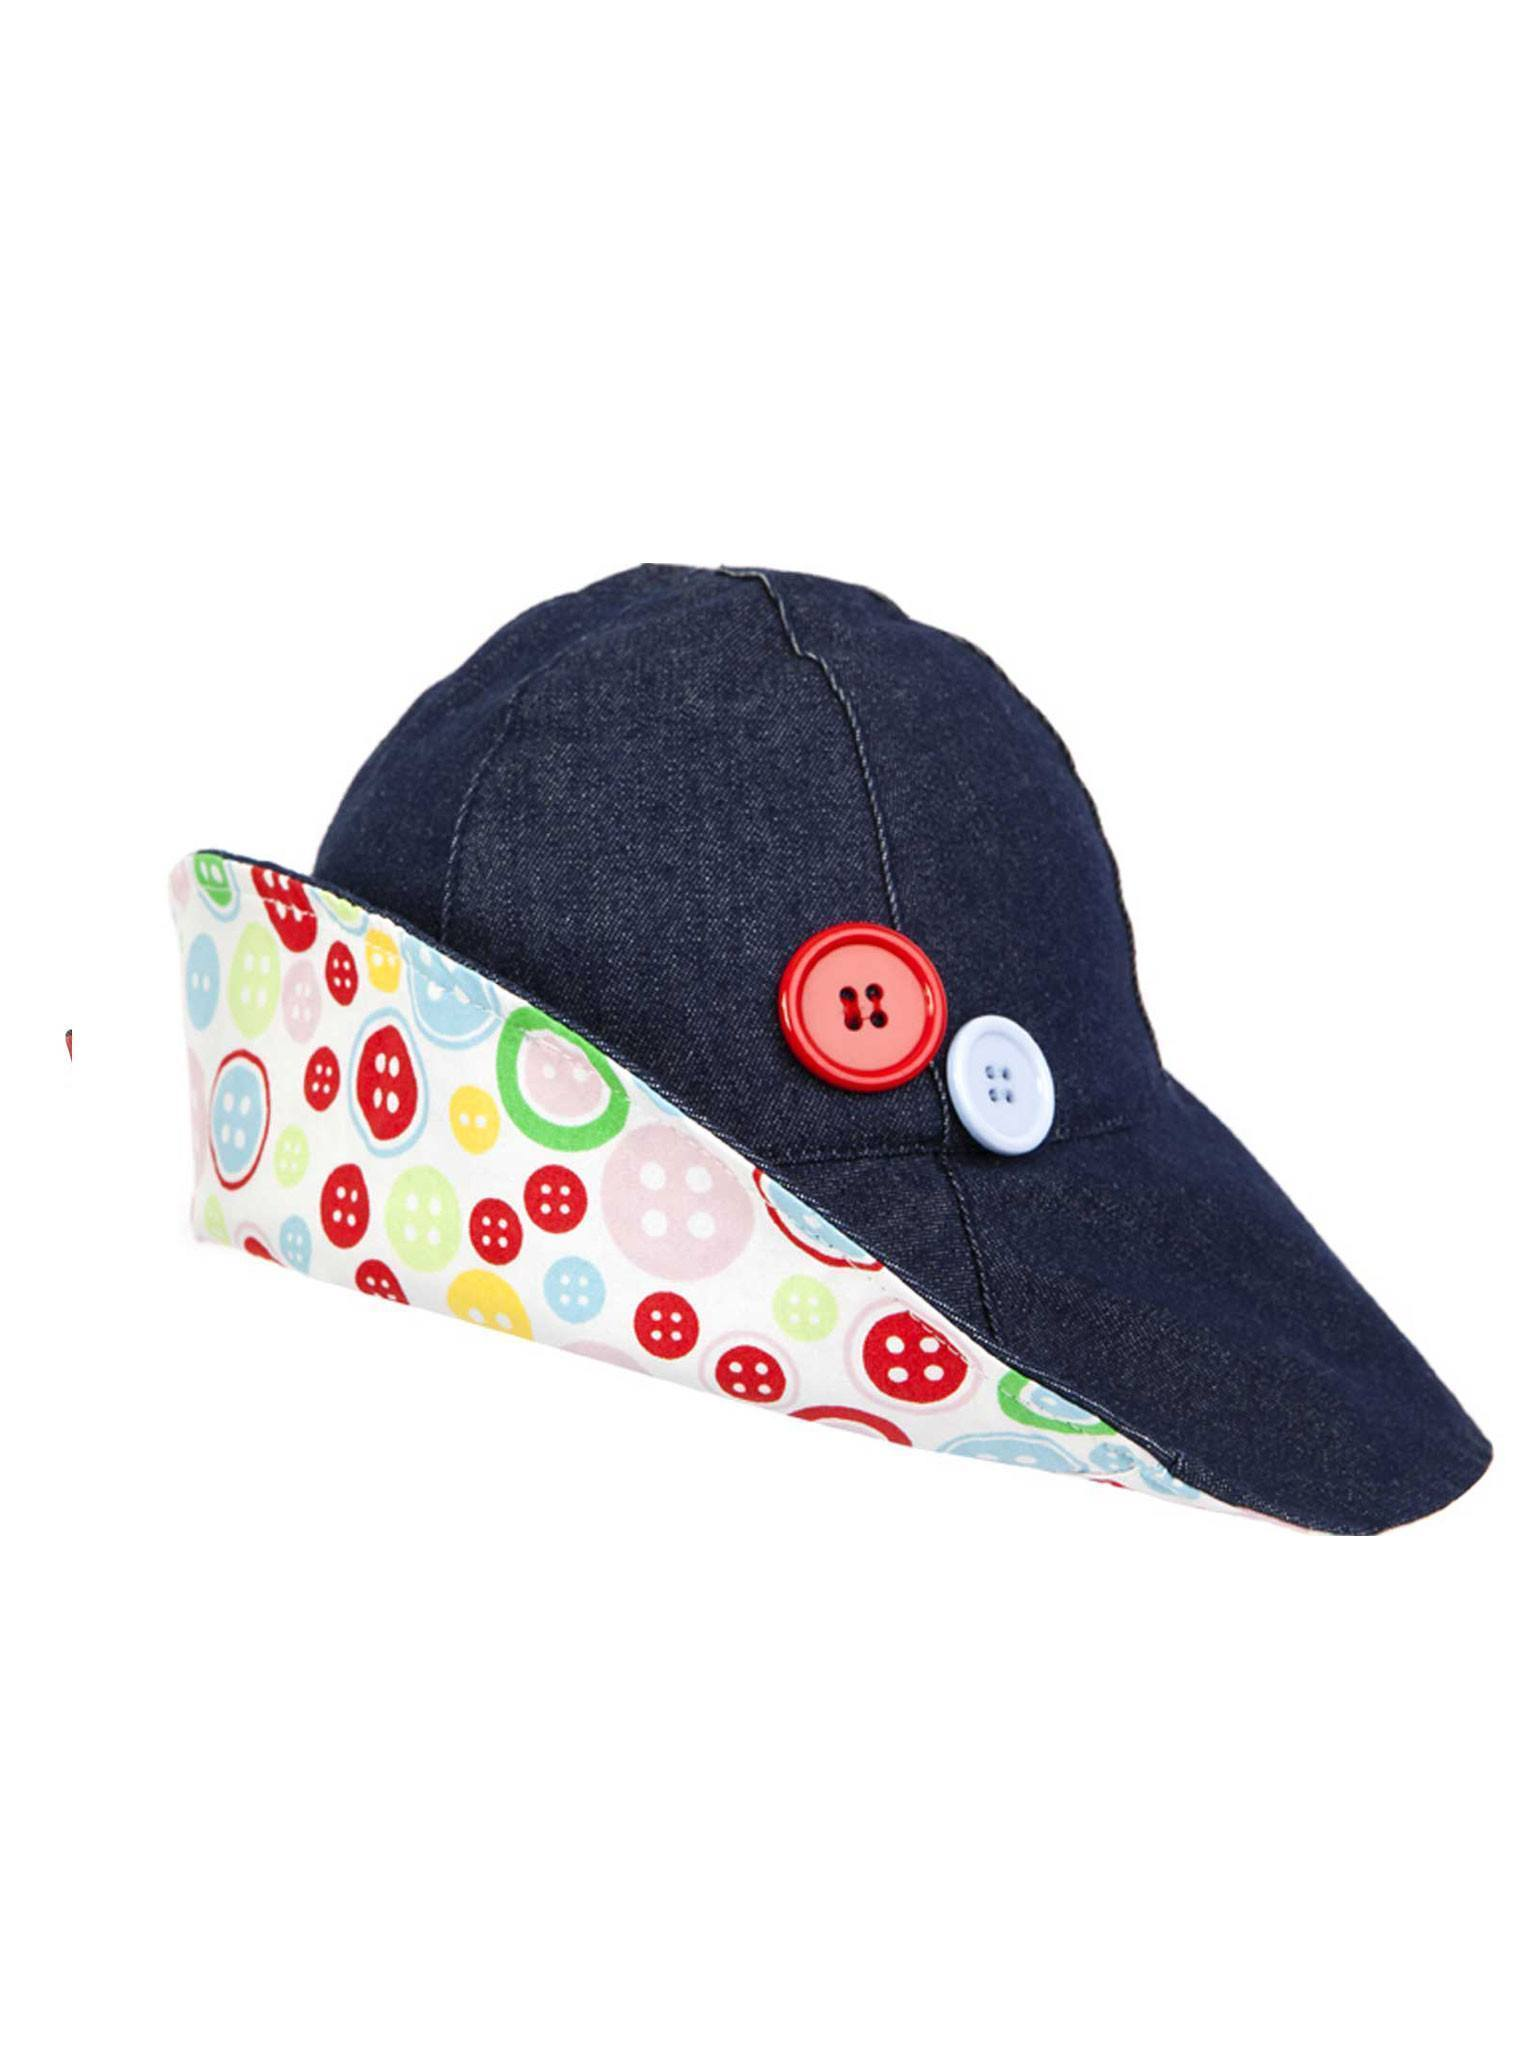 oobi ウーヴィー BRIDGETTE LARGE BRIM DENIM & BUTTONS HAT